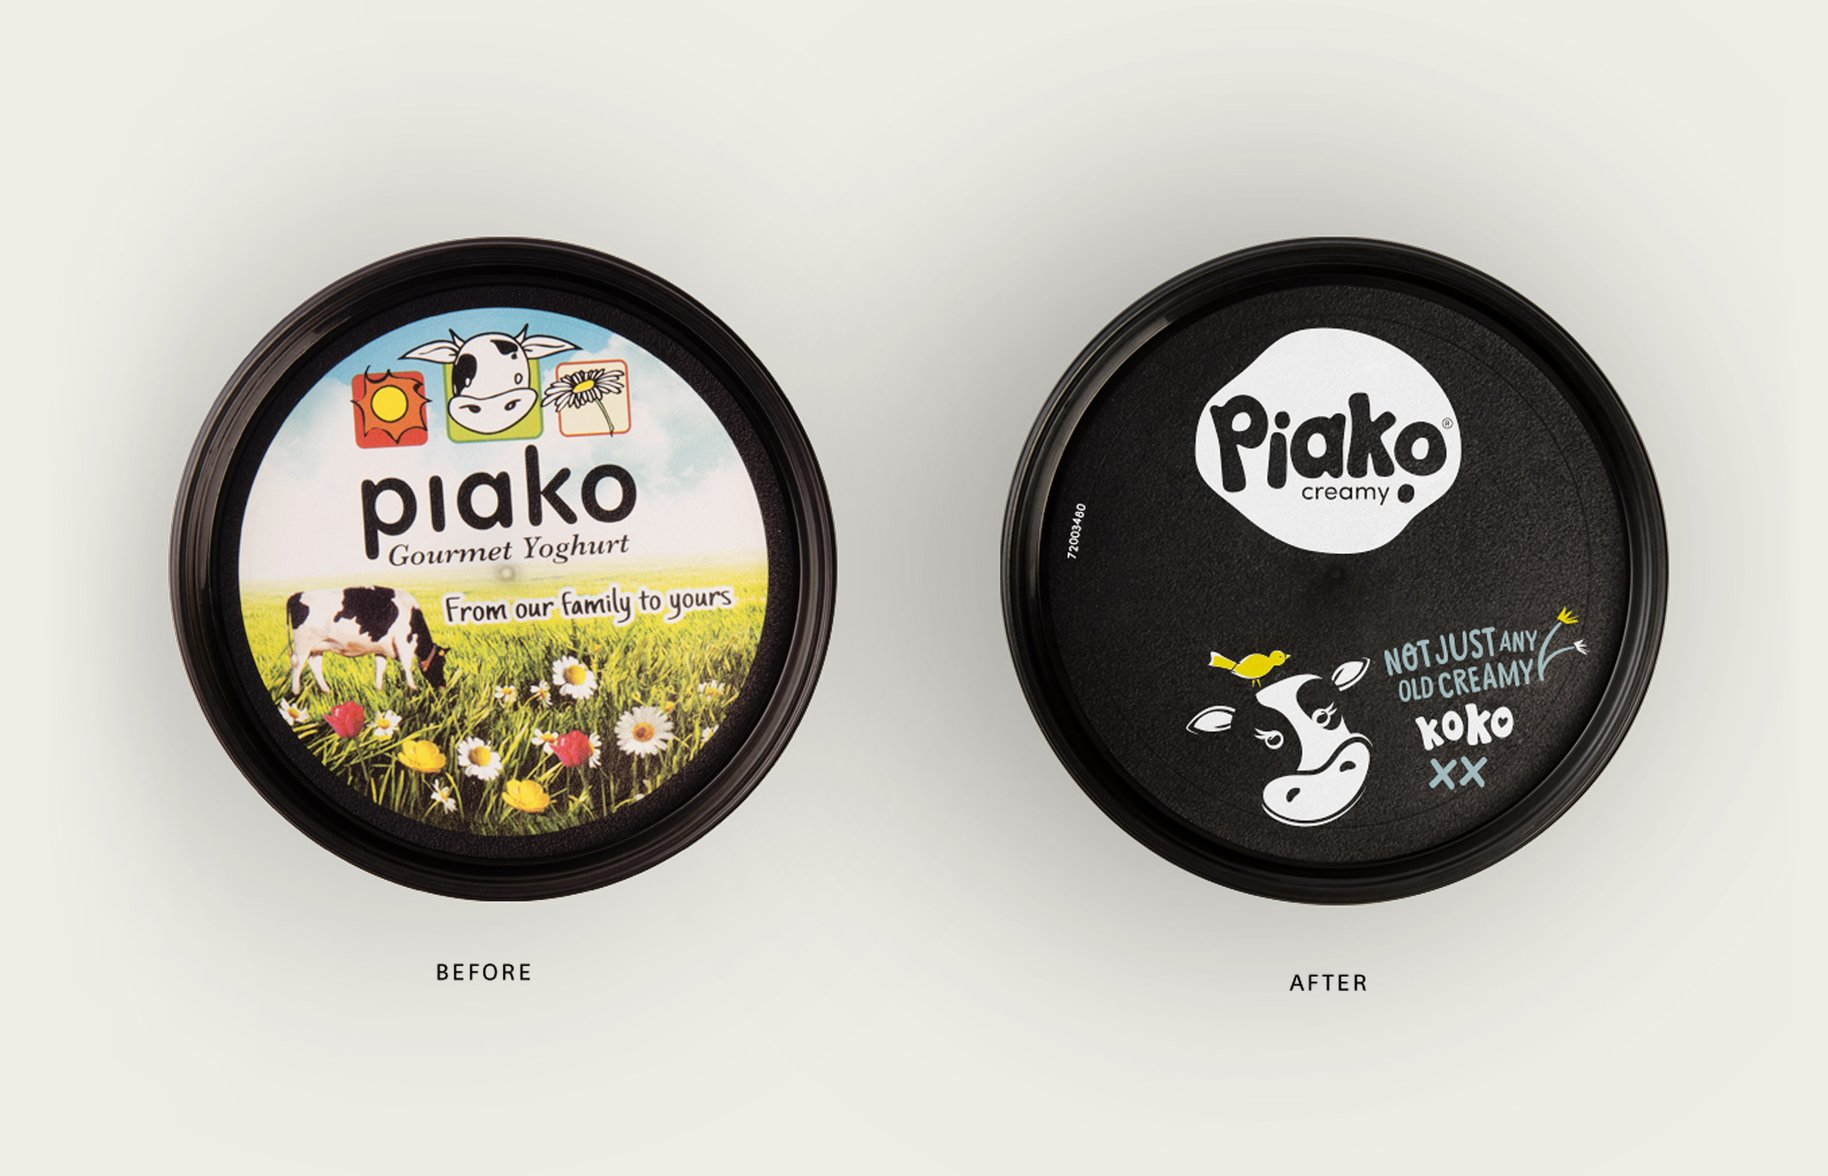 Piako Creamy yoghurt packaging before and after lid